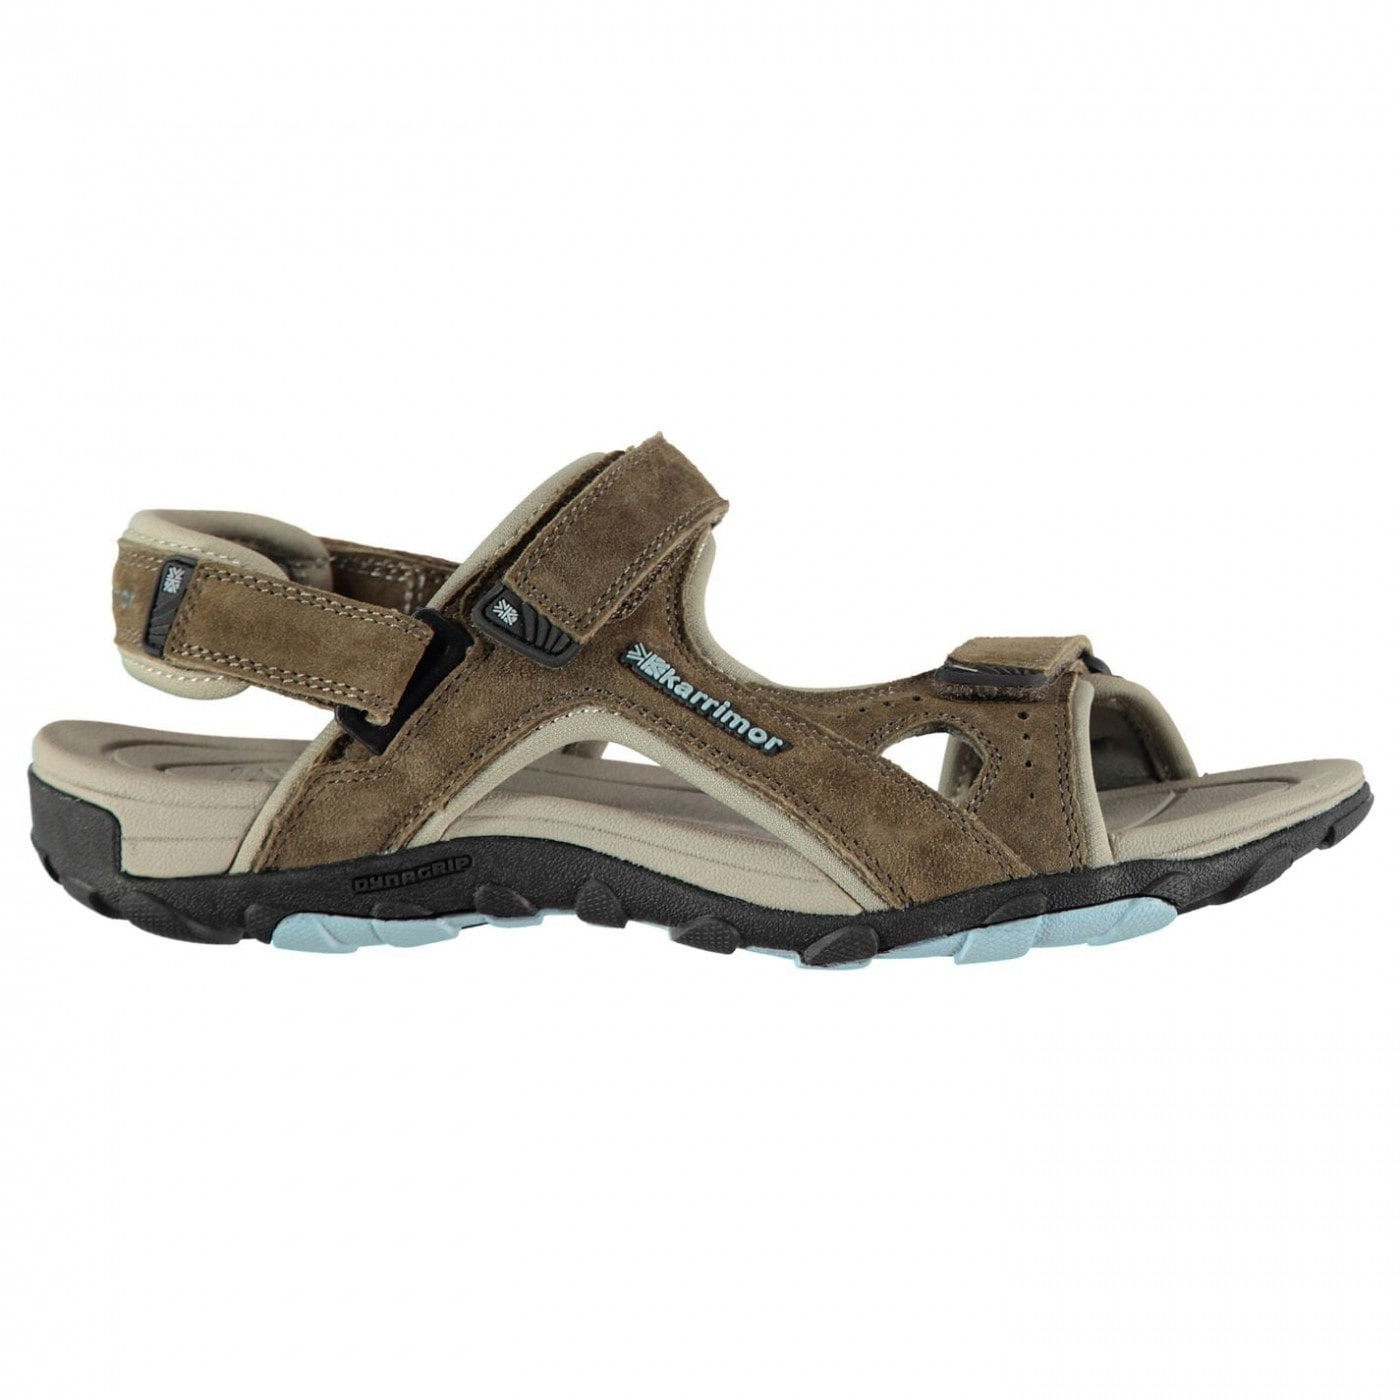 Women's sandals  Karrimor Antibes